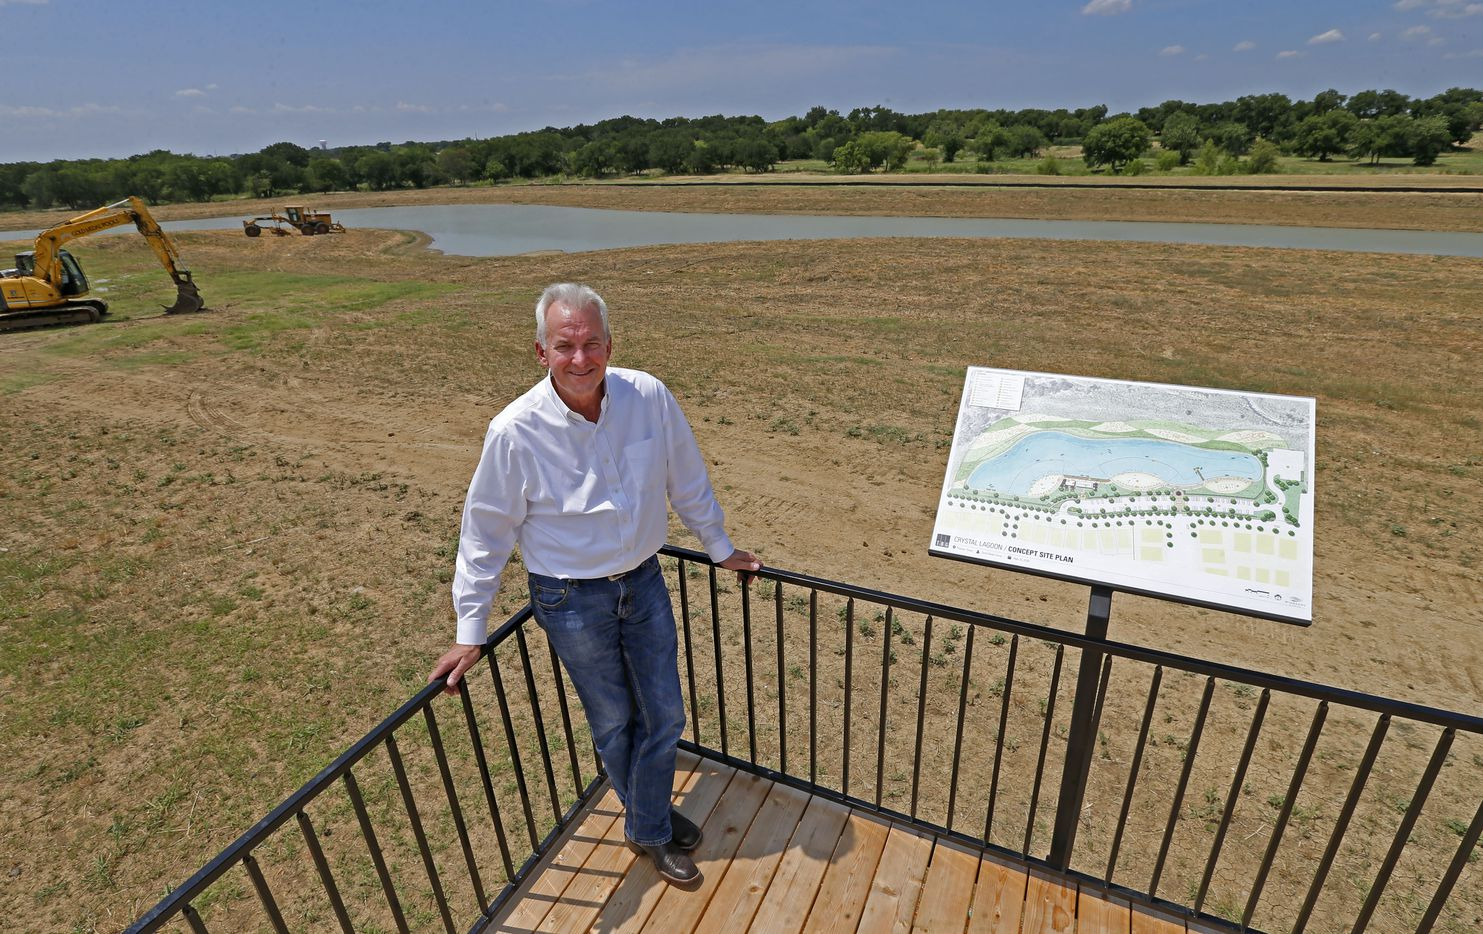 Developer Craig Martin poses for a photograph at a construction site of the new 5-acre crystal clear lagoon by Crystal Lagoons in the Windsong Ranch community in Prosper.